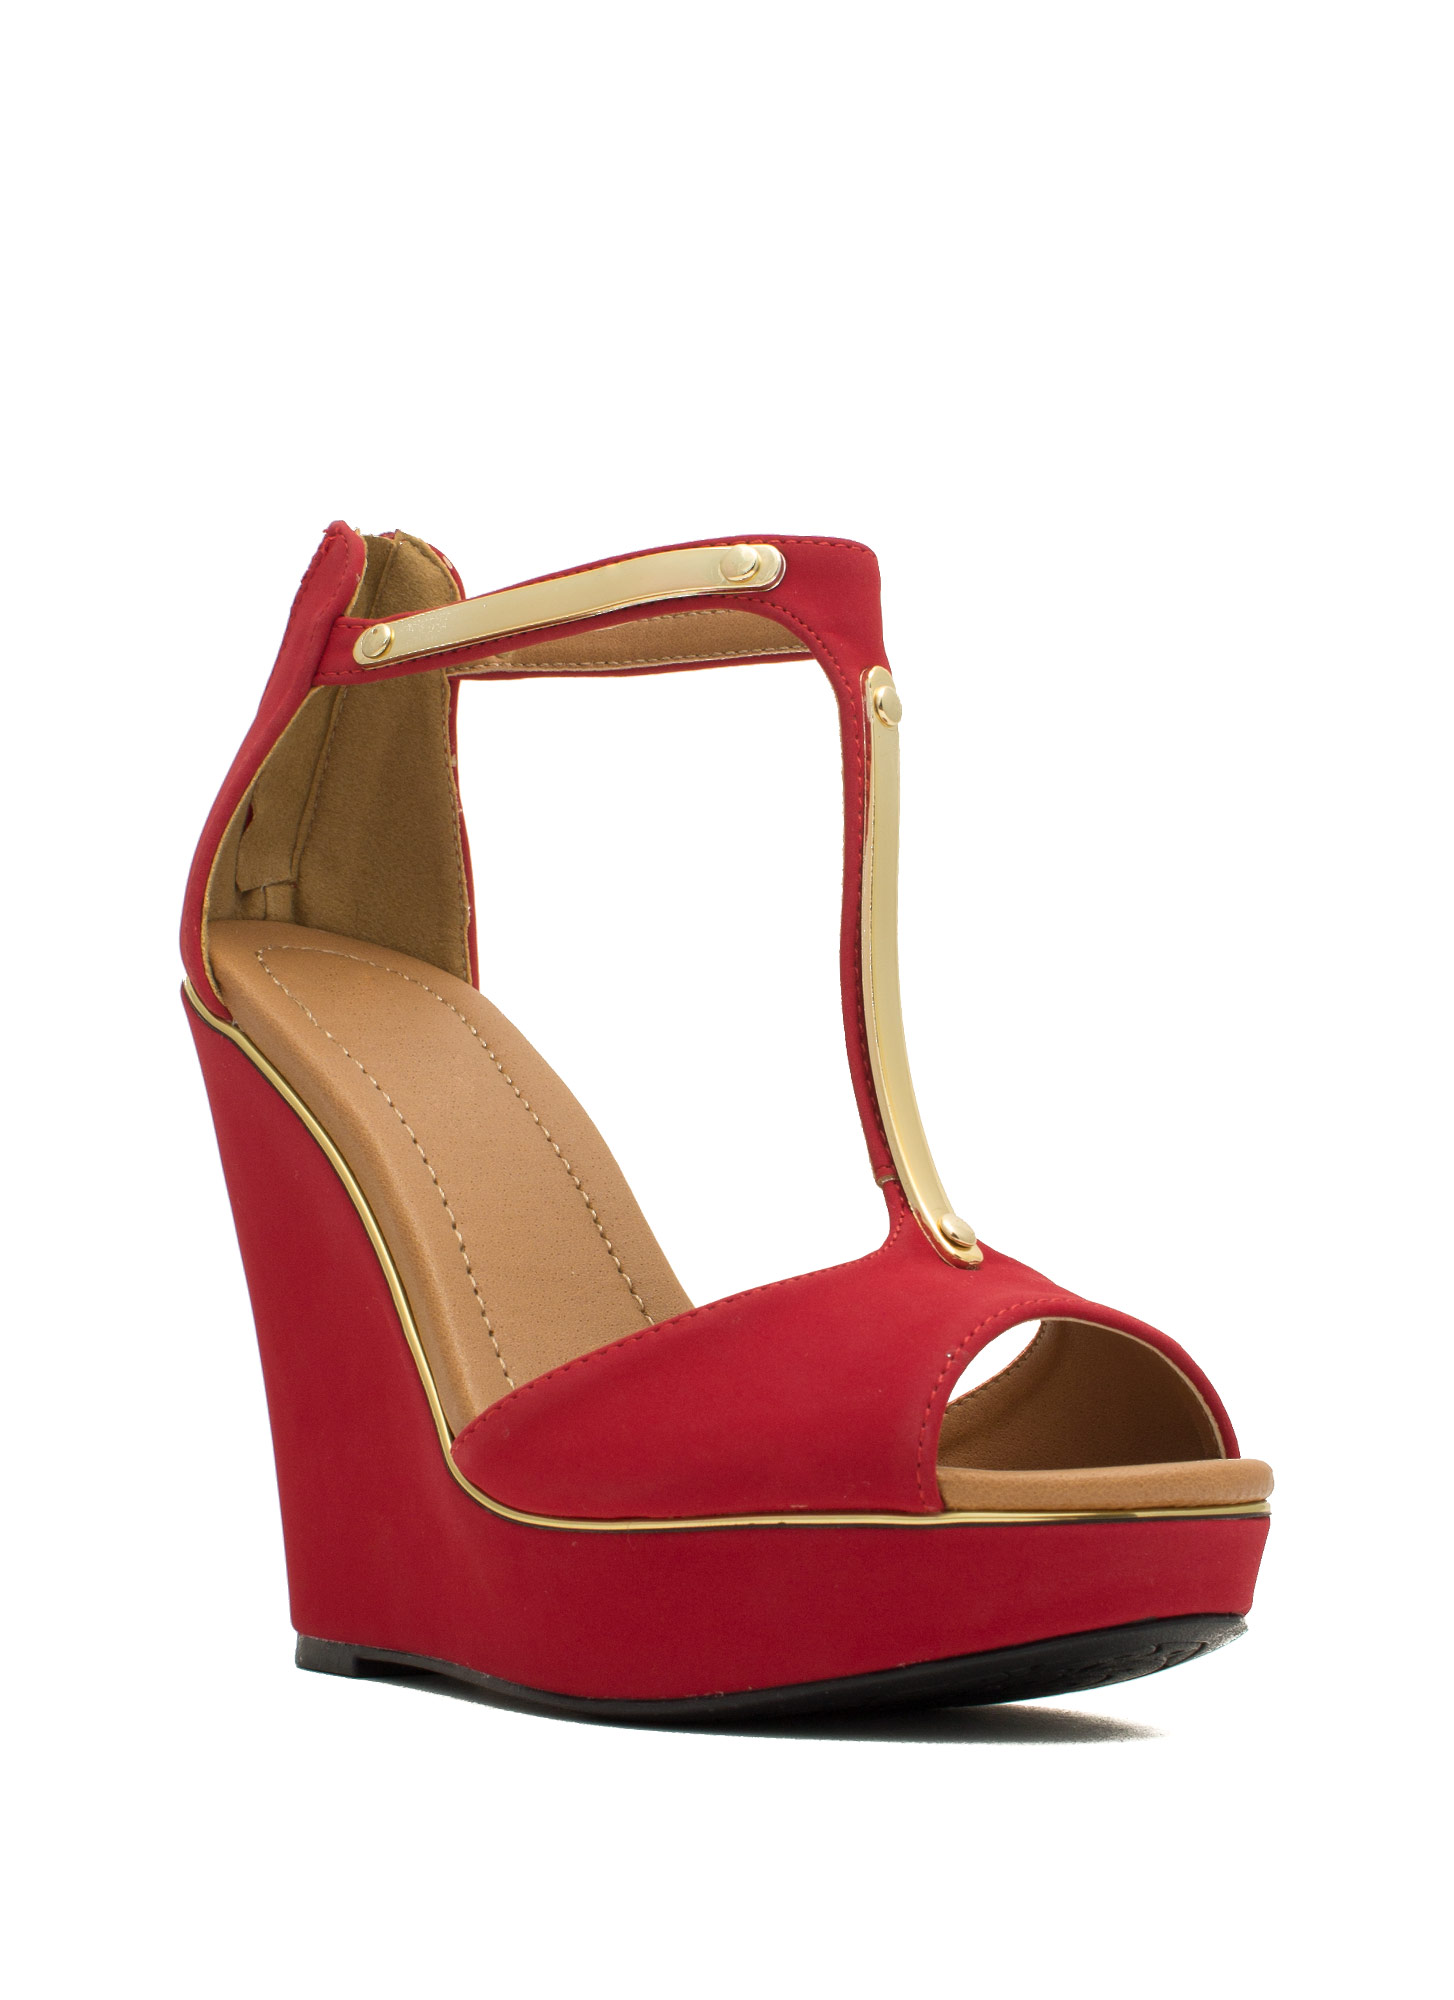 Rise And Shine Trimmed T-Strap Wedges DKRED